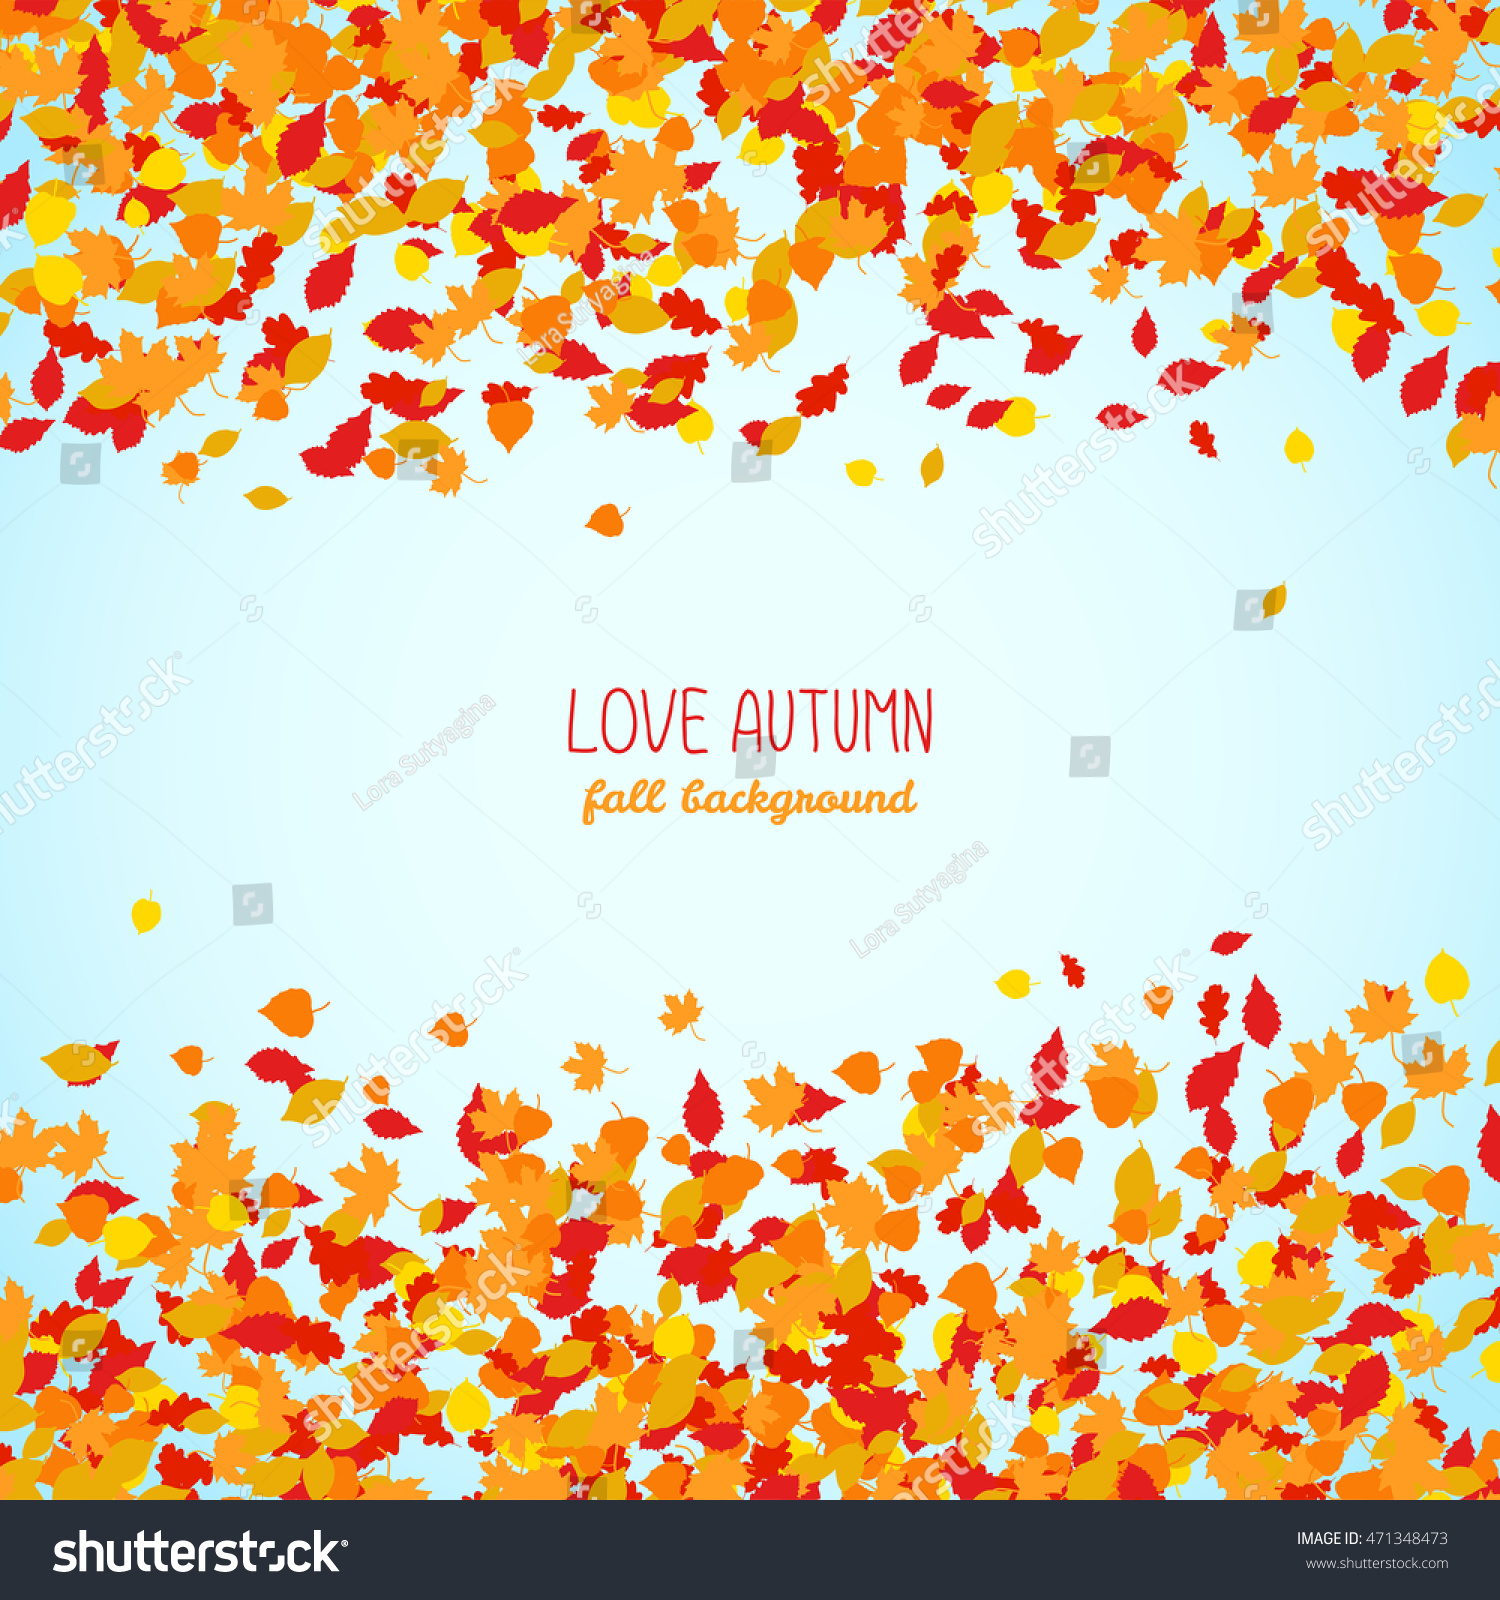 love autumn fall background falling leaves stock vector royalty